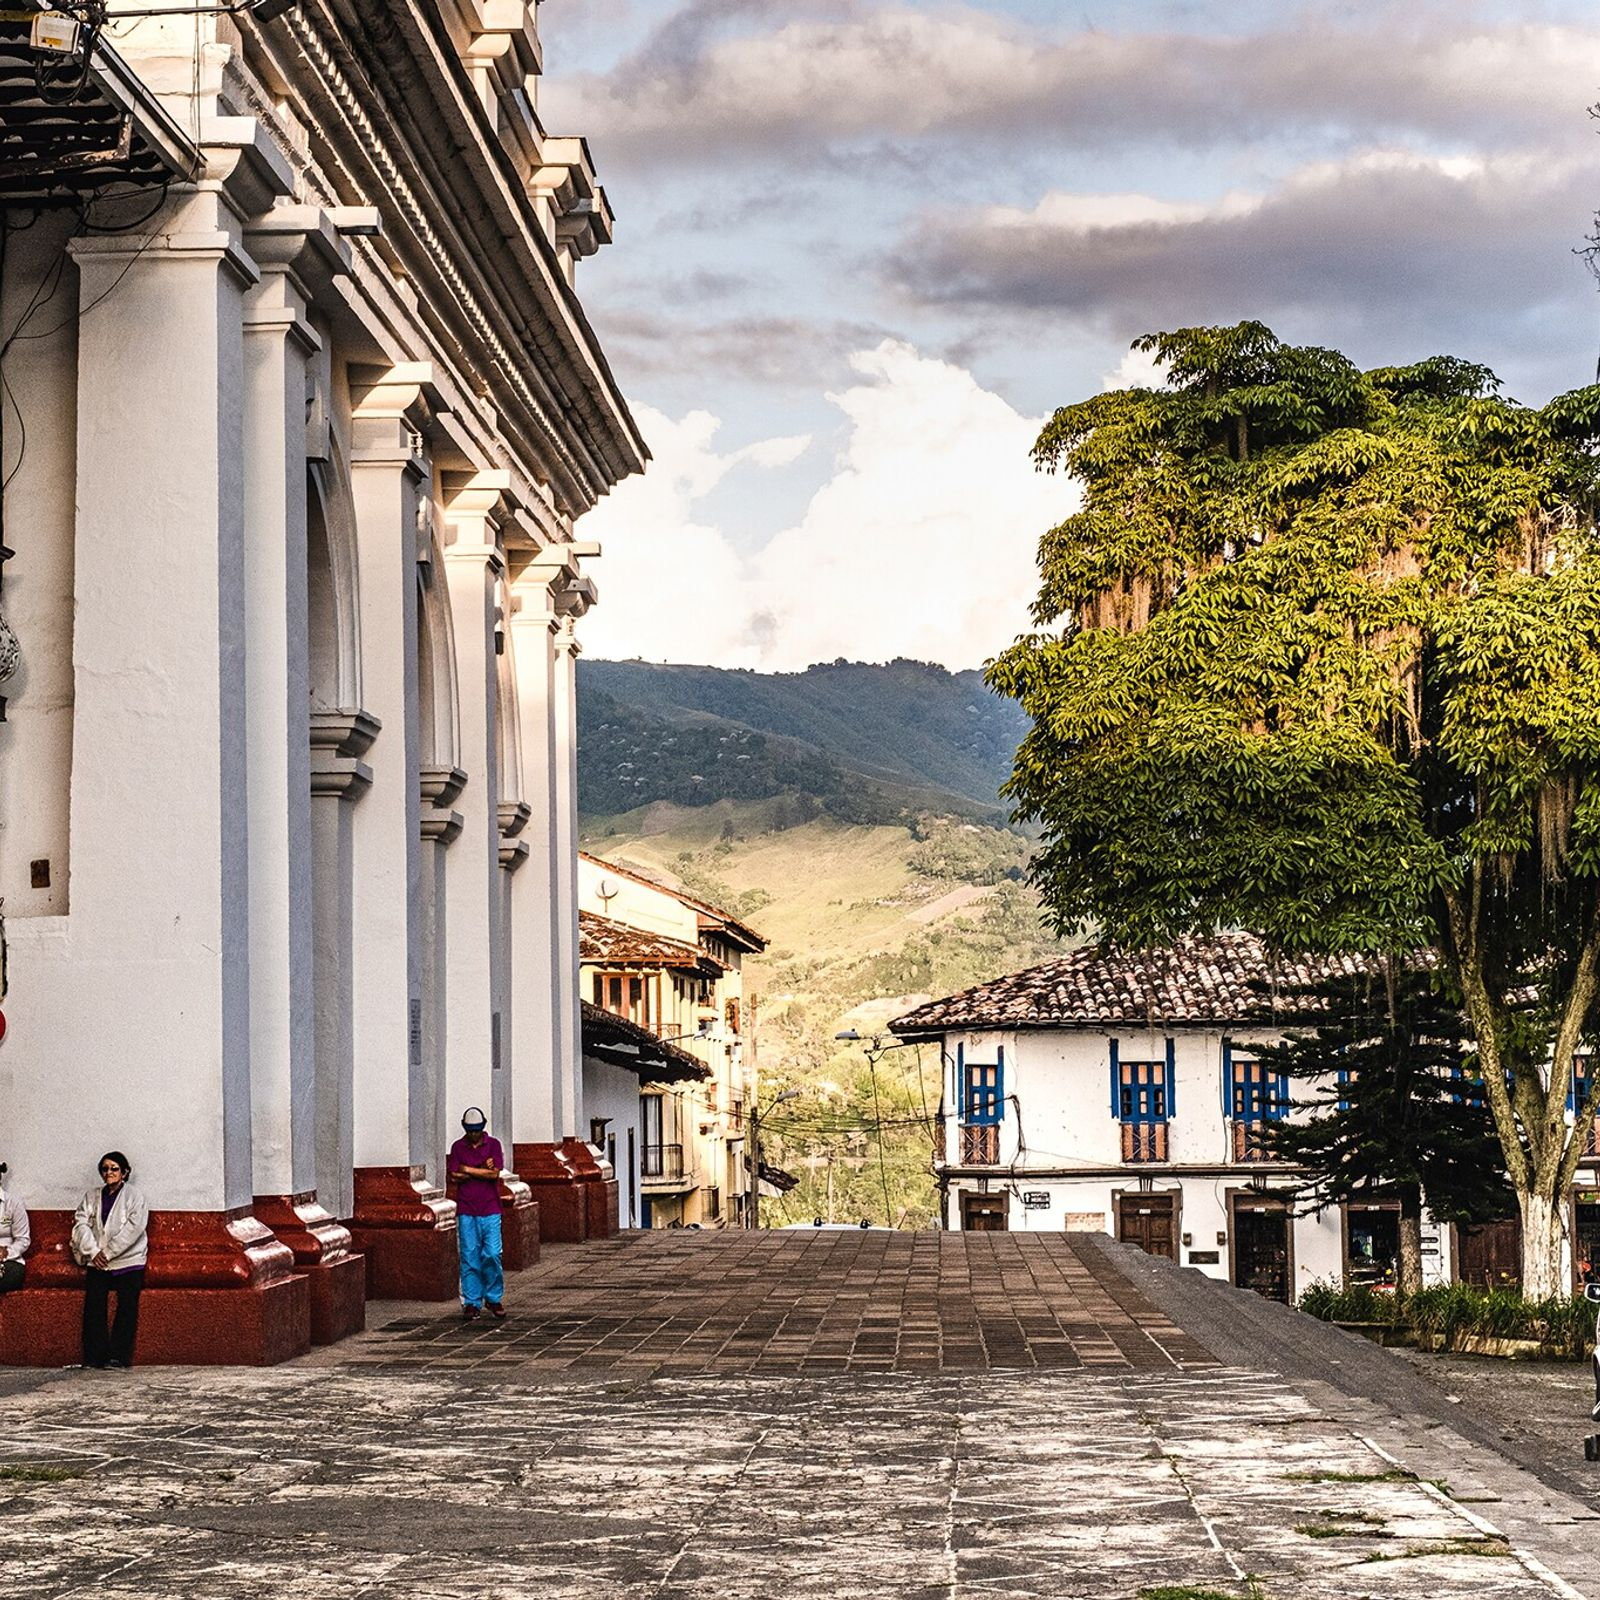 Especially in the departments of Caldas, Risaralda, Quindío and Tolima, where whitewashed, working fincas dot the landscape and ...